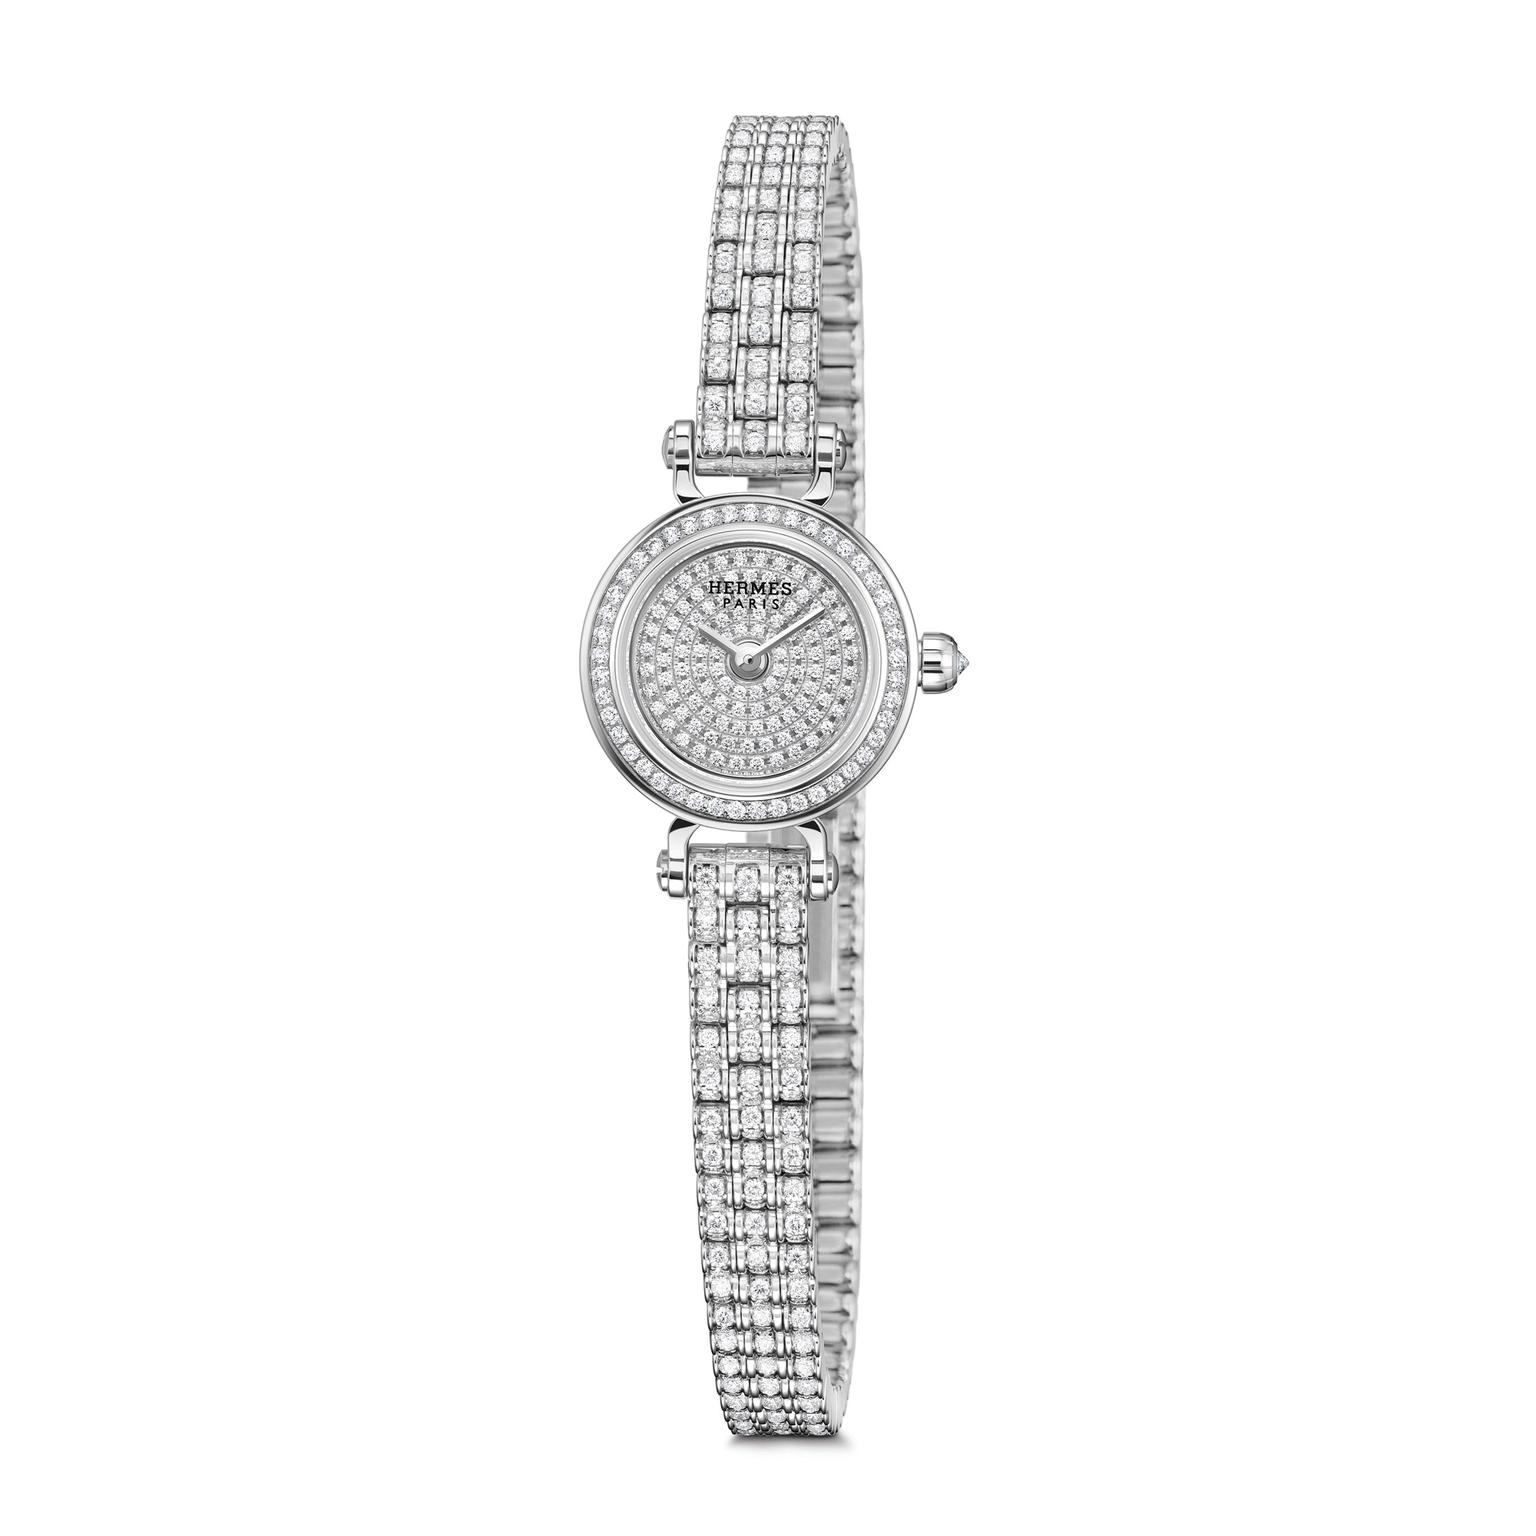 Hermes Faubourg Joaillerie diamond watch